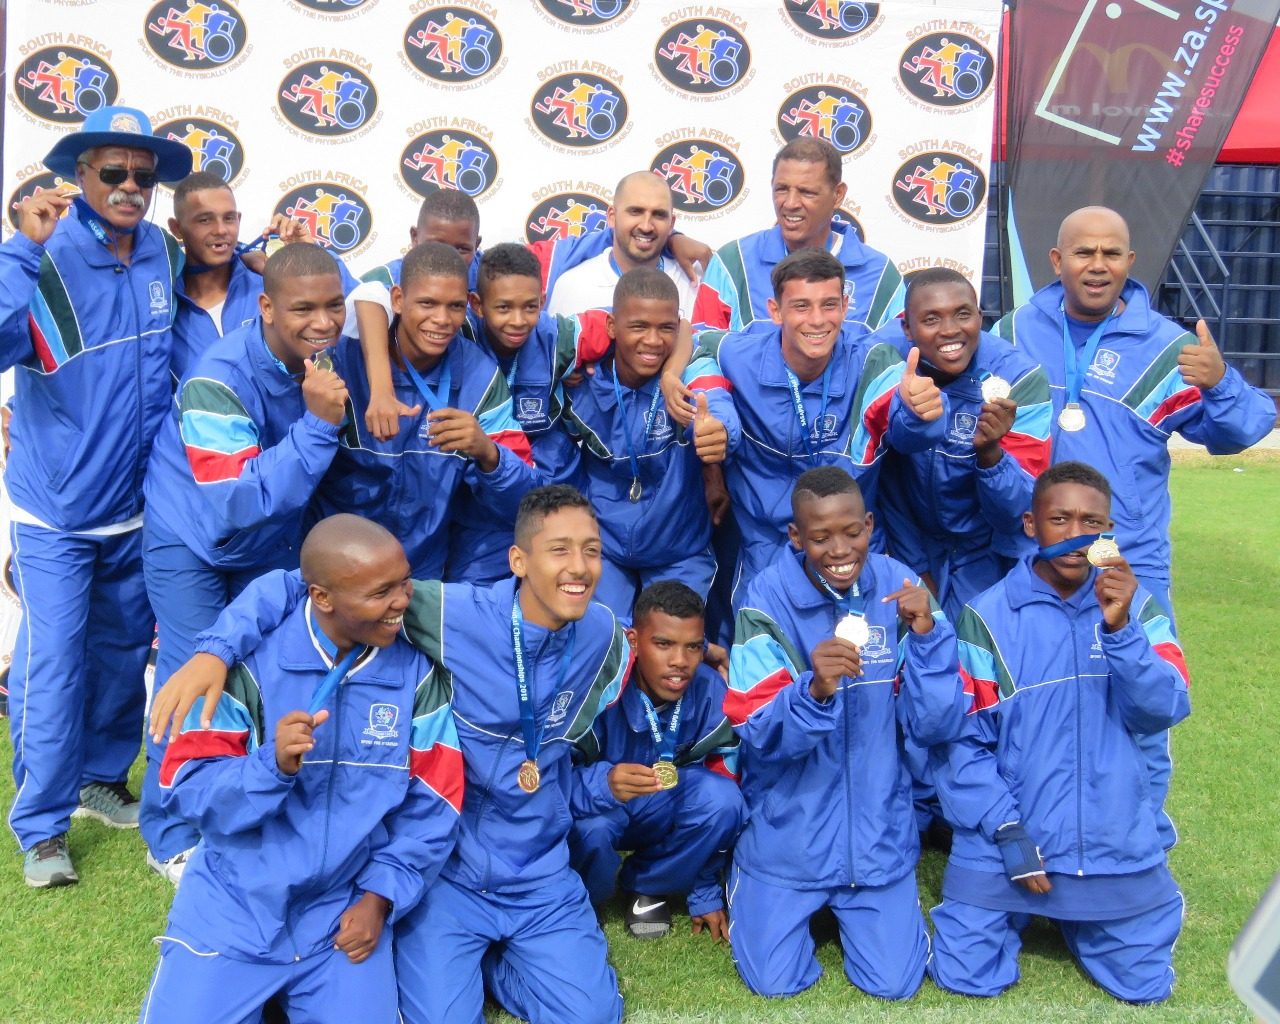 GOLD MEDAL FOR WP DISABLED SOCCER TEAM, 7 IN SA SQUAD FOR SPAIN